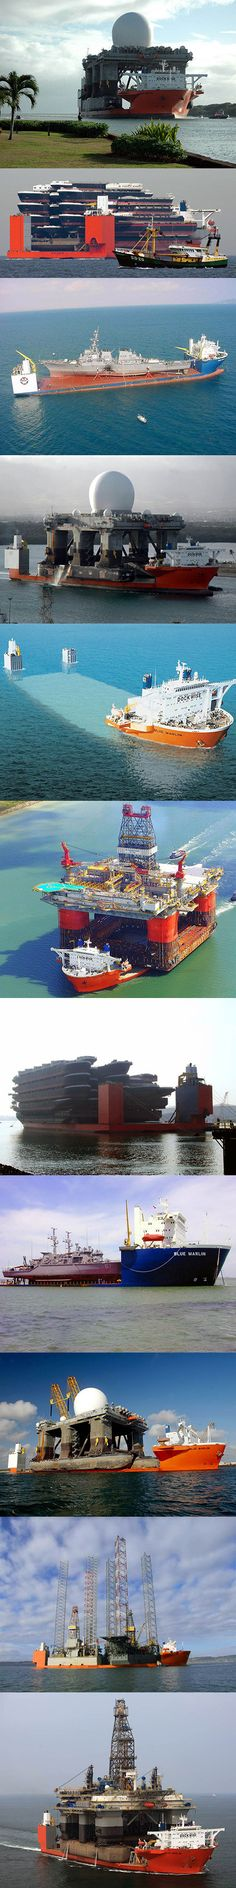 Blue Marlin is basically a semi-submersible heavy lift ship designed to transport very large semi-submersible drilling rigs and other ships, above the transport deck. Its equipped with 38 cabins to accommodate 60 people, a workout room, sauna and swimming facilities.